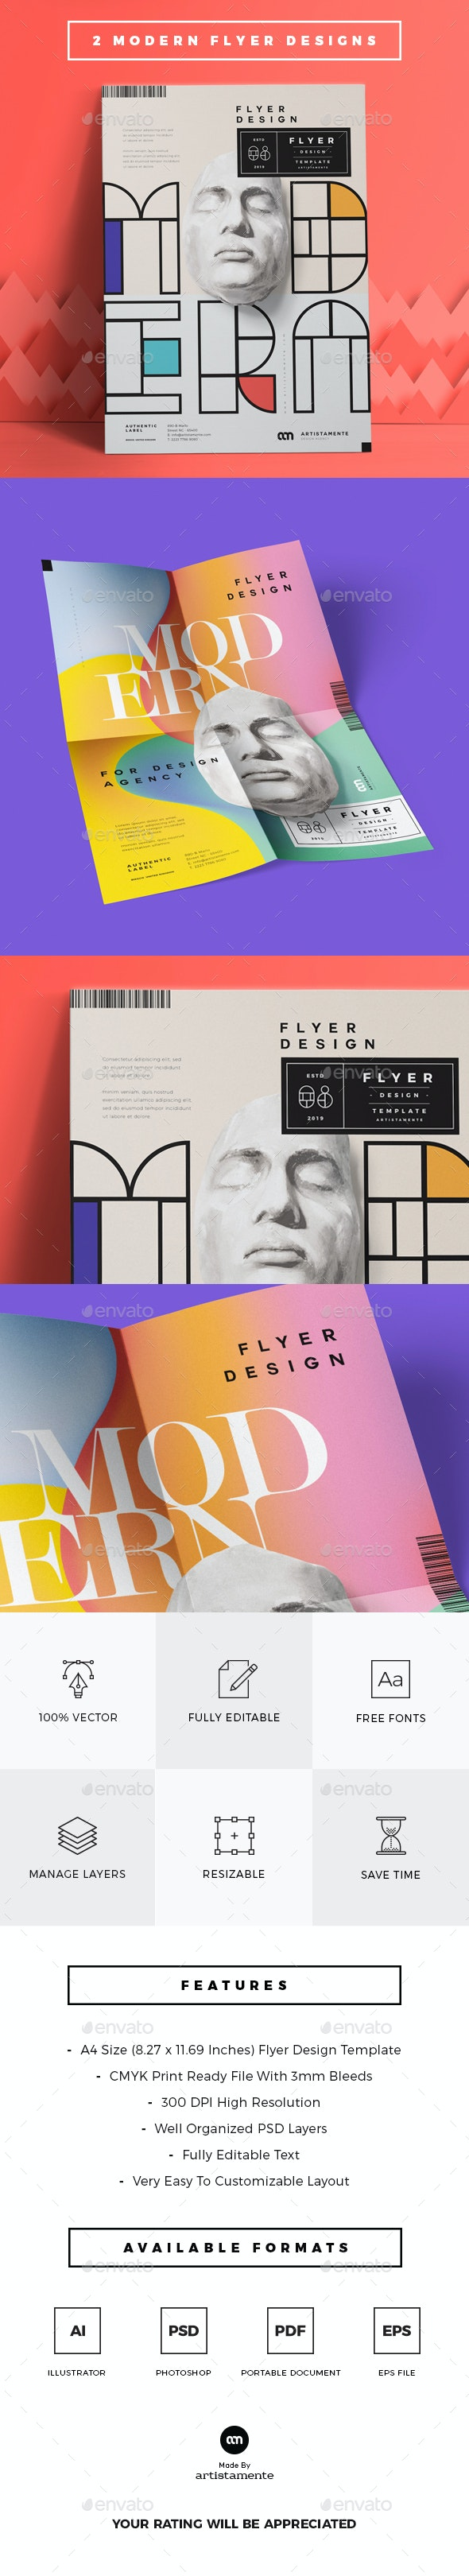 2 Modern Flyer Designs - Miscellaneous Events